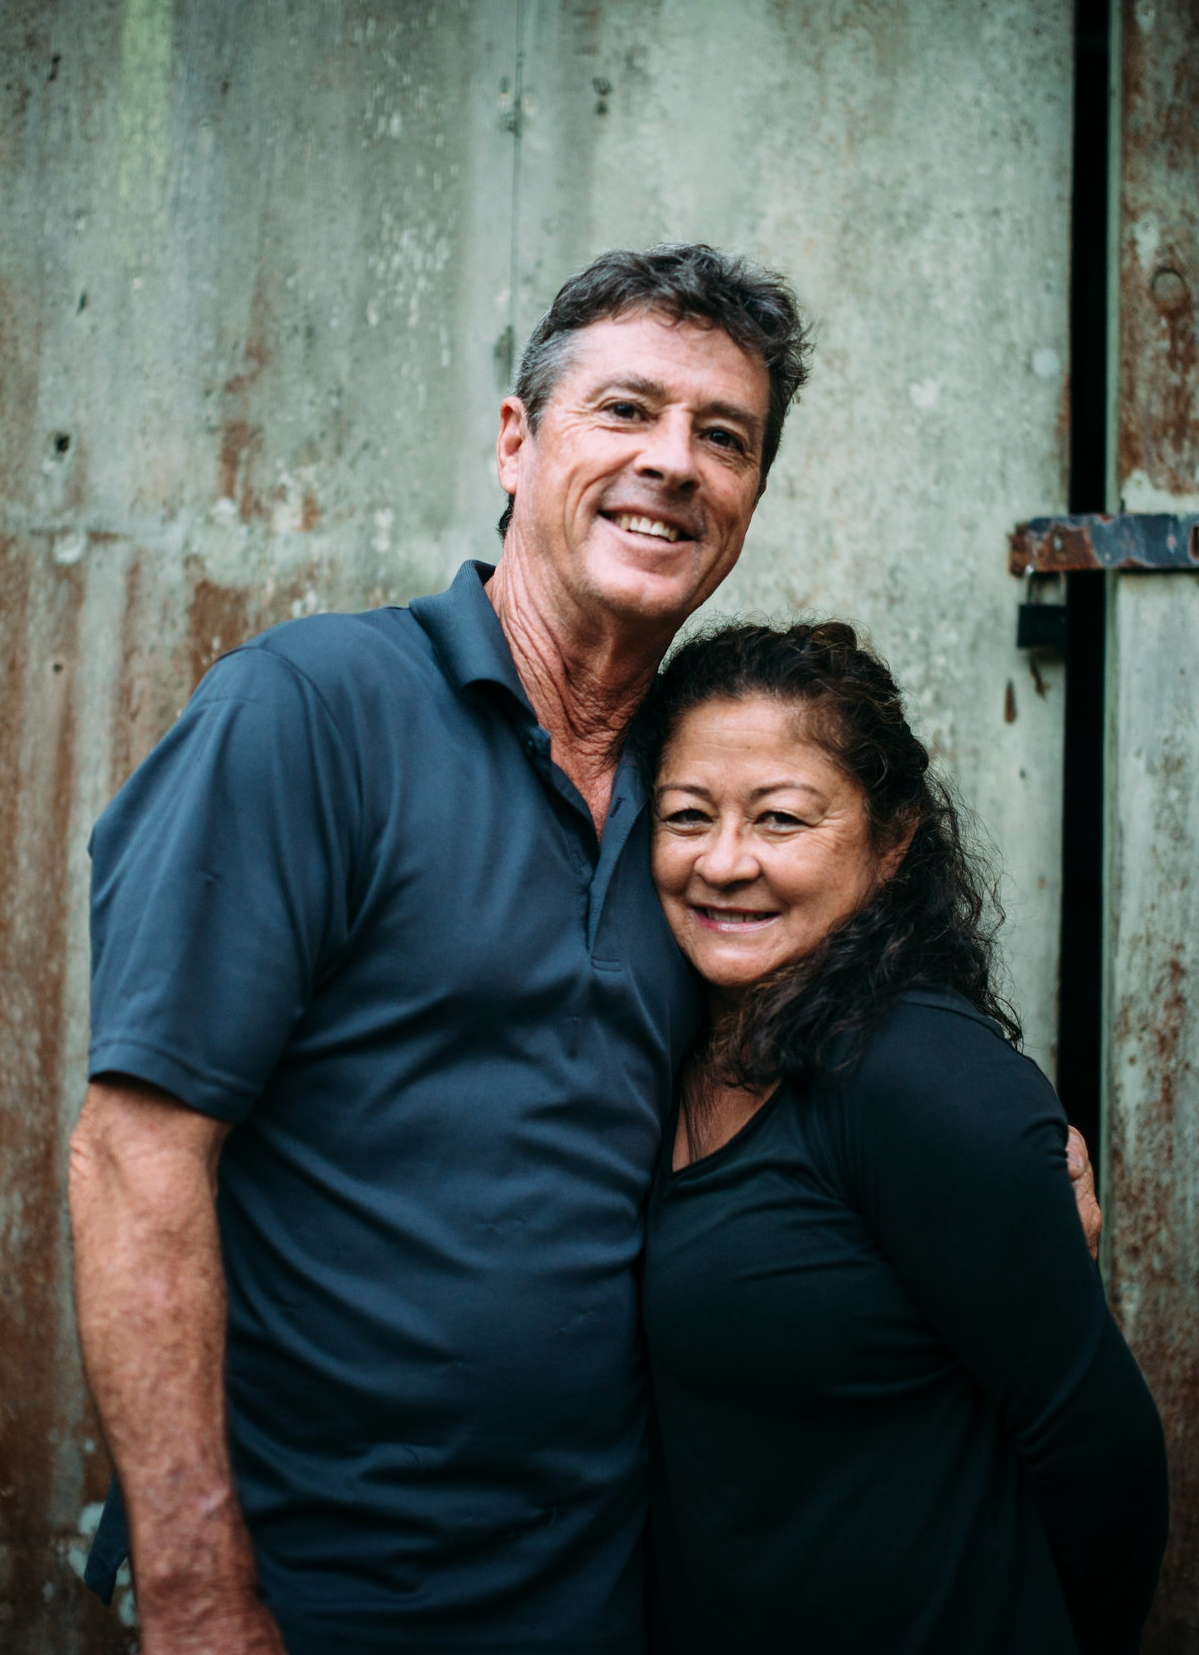 Dan & Jan Bolton, Founders of Kona Coffee & Tea   PHOTO: Blake Wisz